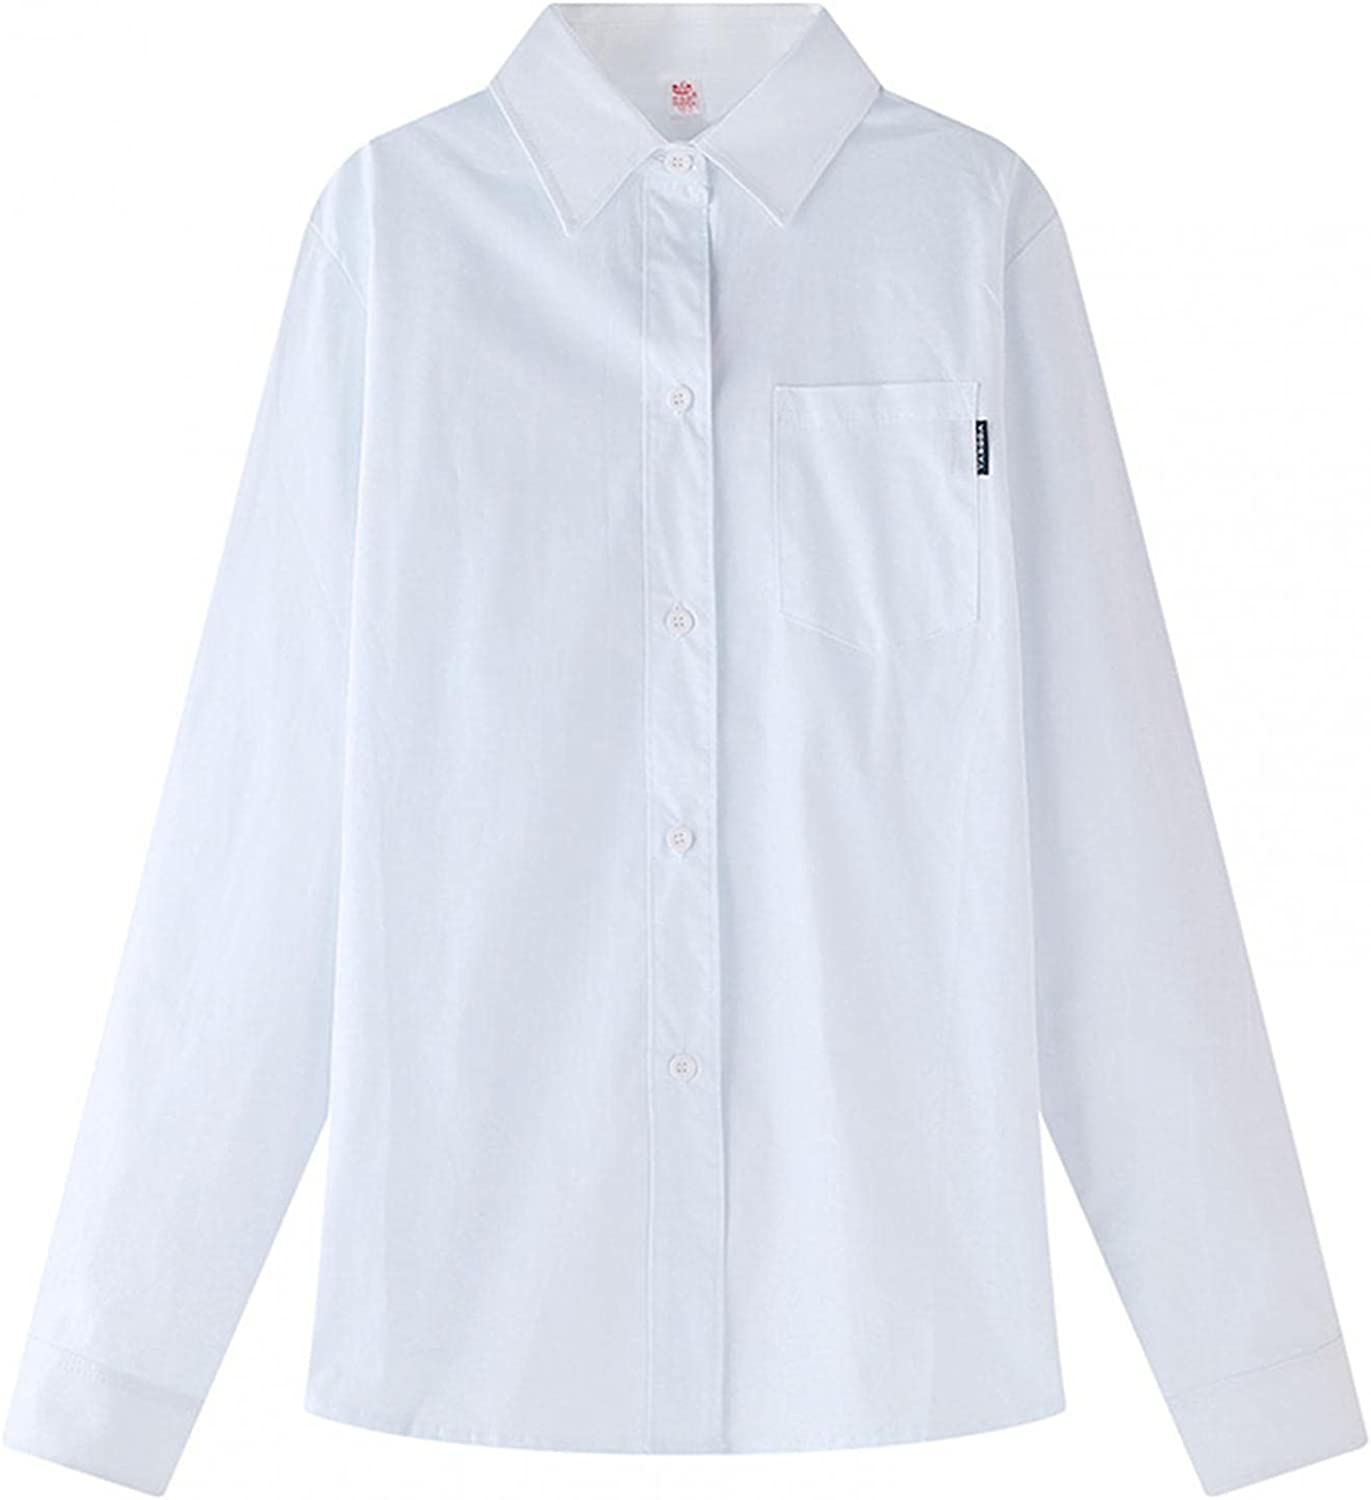 Forver Little Kids Formal Blouse Button White Shirts Tops Children Kids Youth Girls Boys Back to School Suit Formal Wear